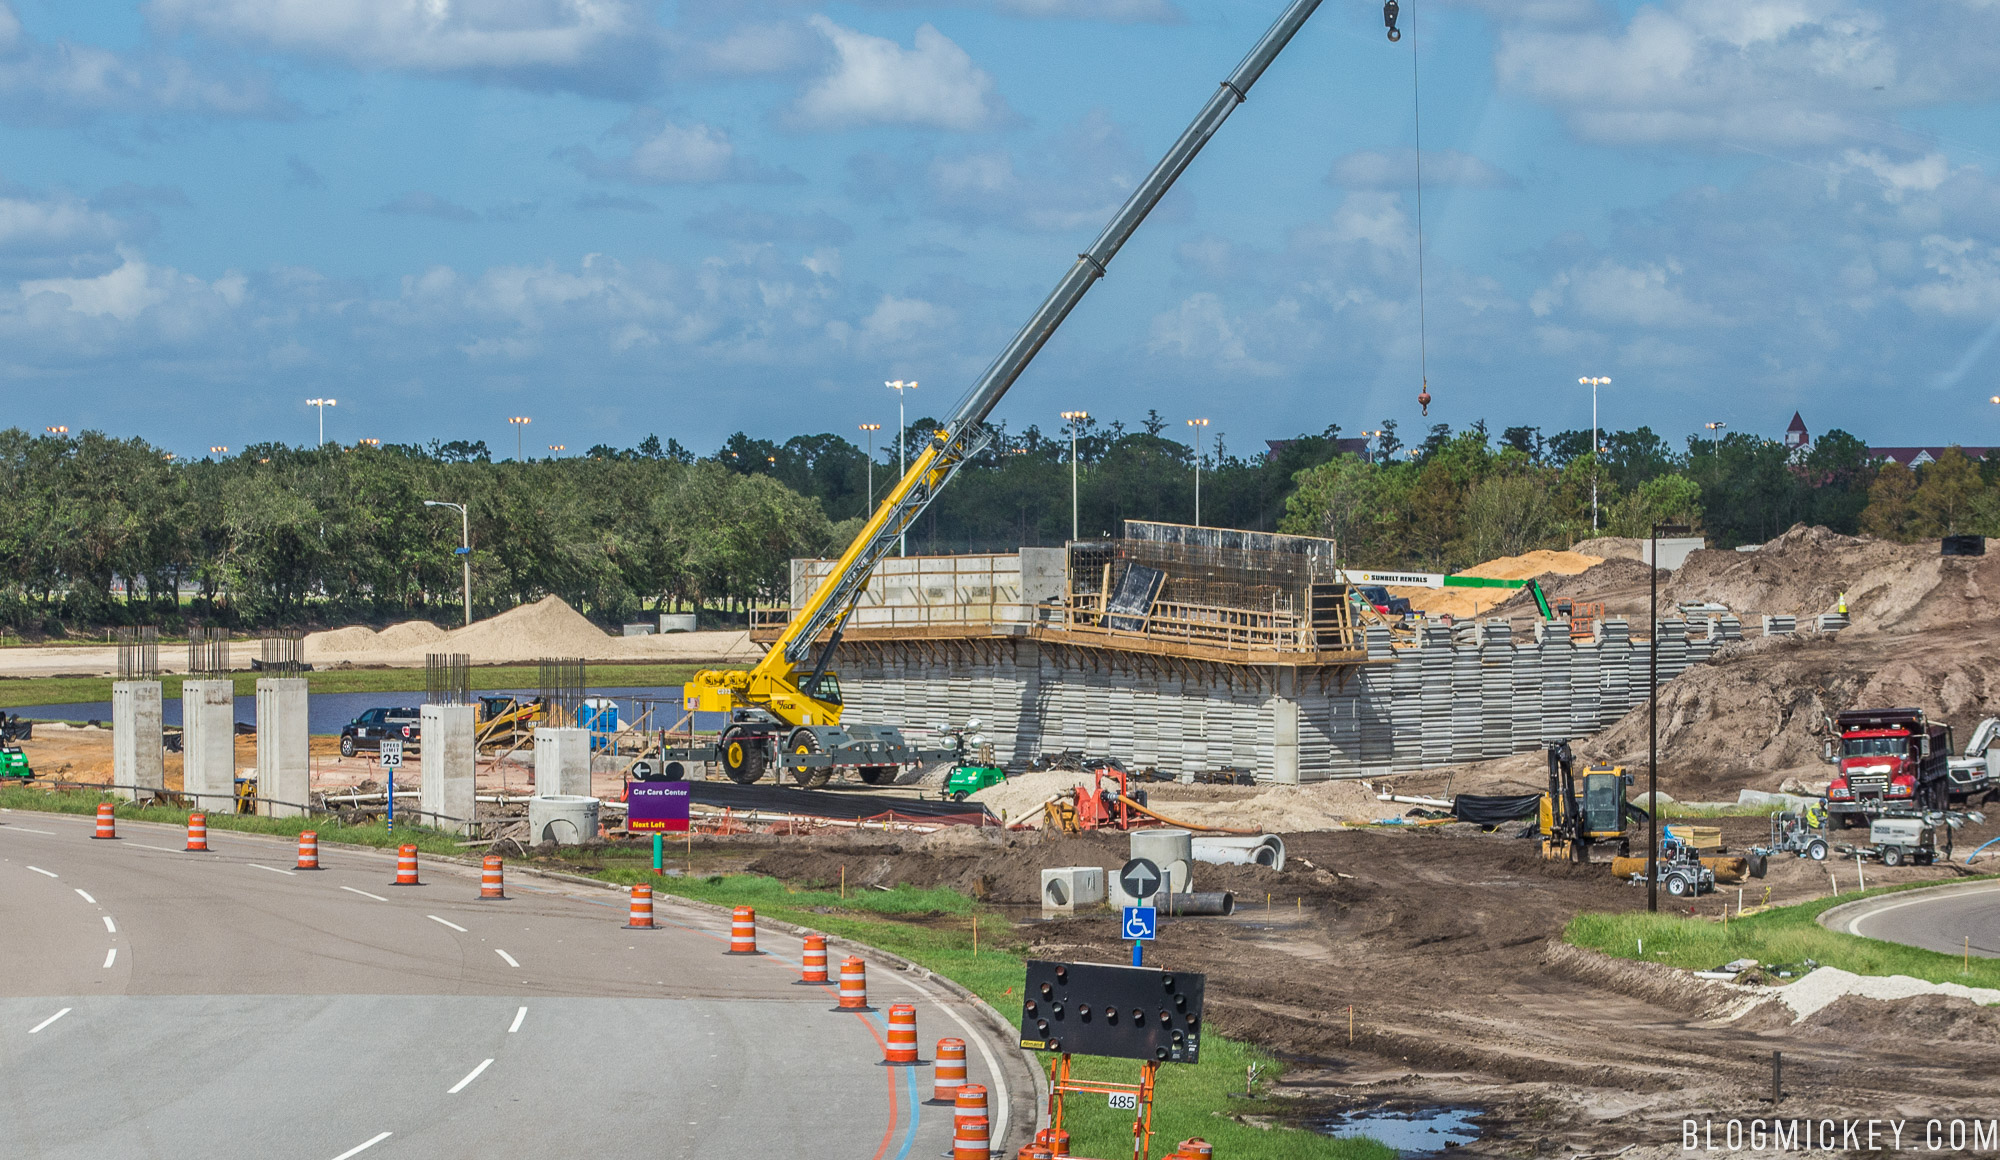 Photos world drive and magic kingdom overpass construction update photos world drive and magic kingdom overpass construction update october 2017 malvernweather Gallery